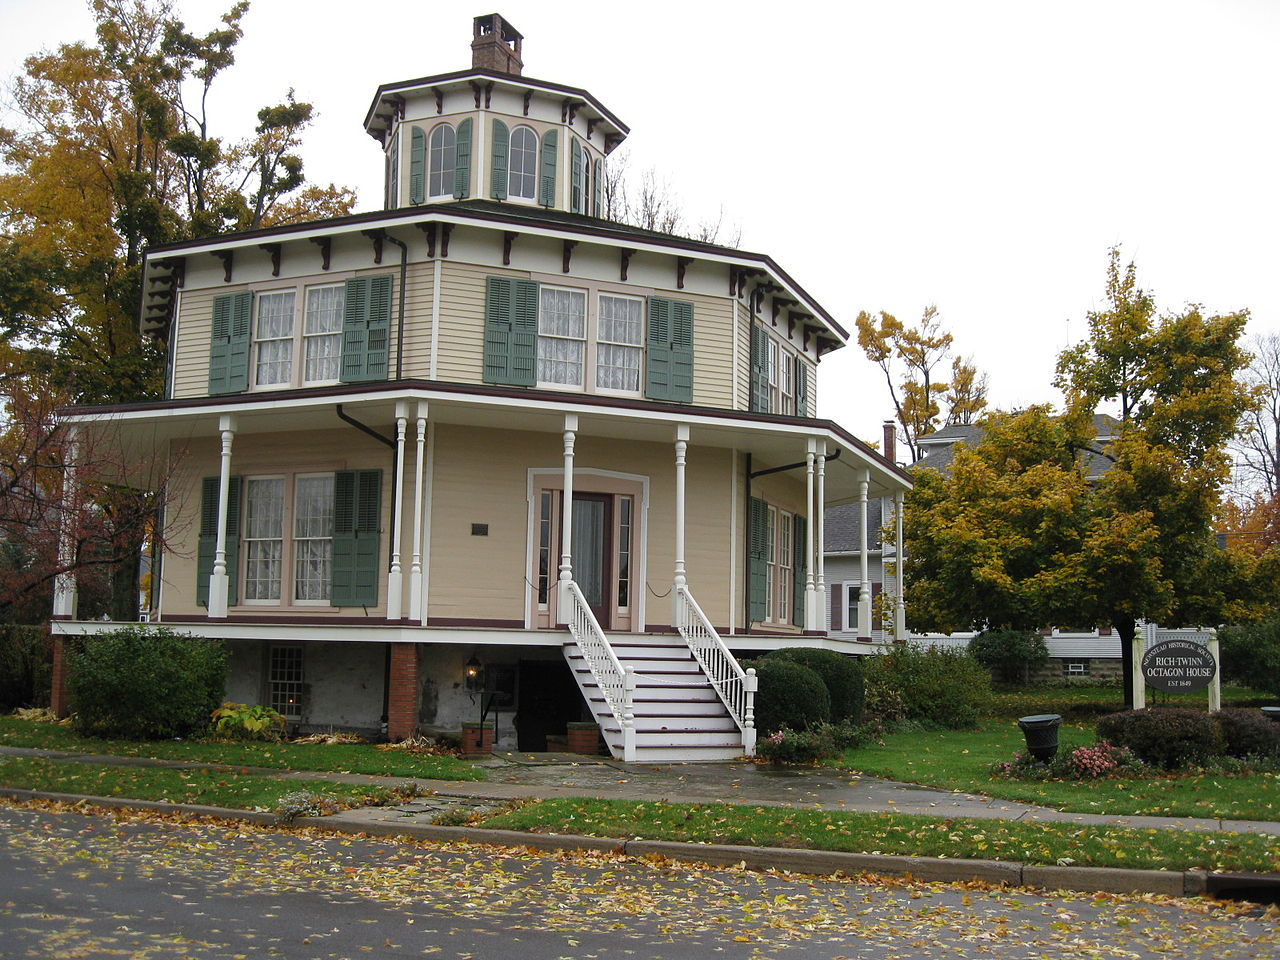 The Rich-Twinn Octagon House was built around 1850 and is the only octagon home in Erie County.